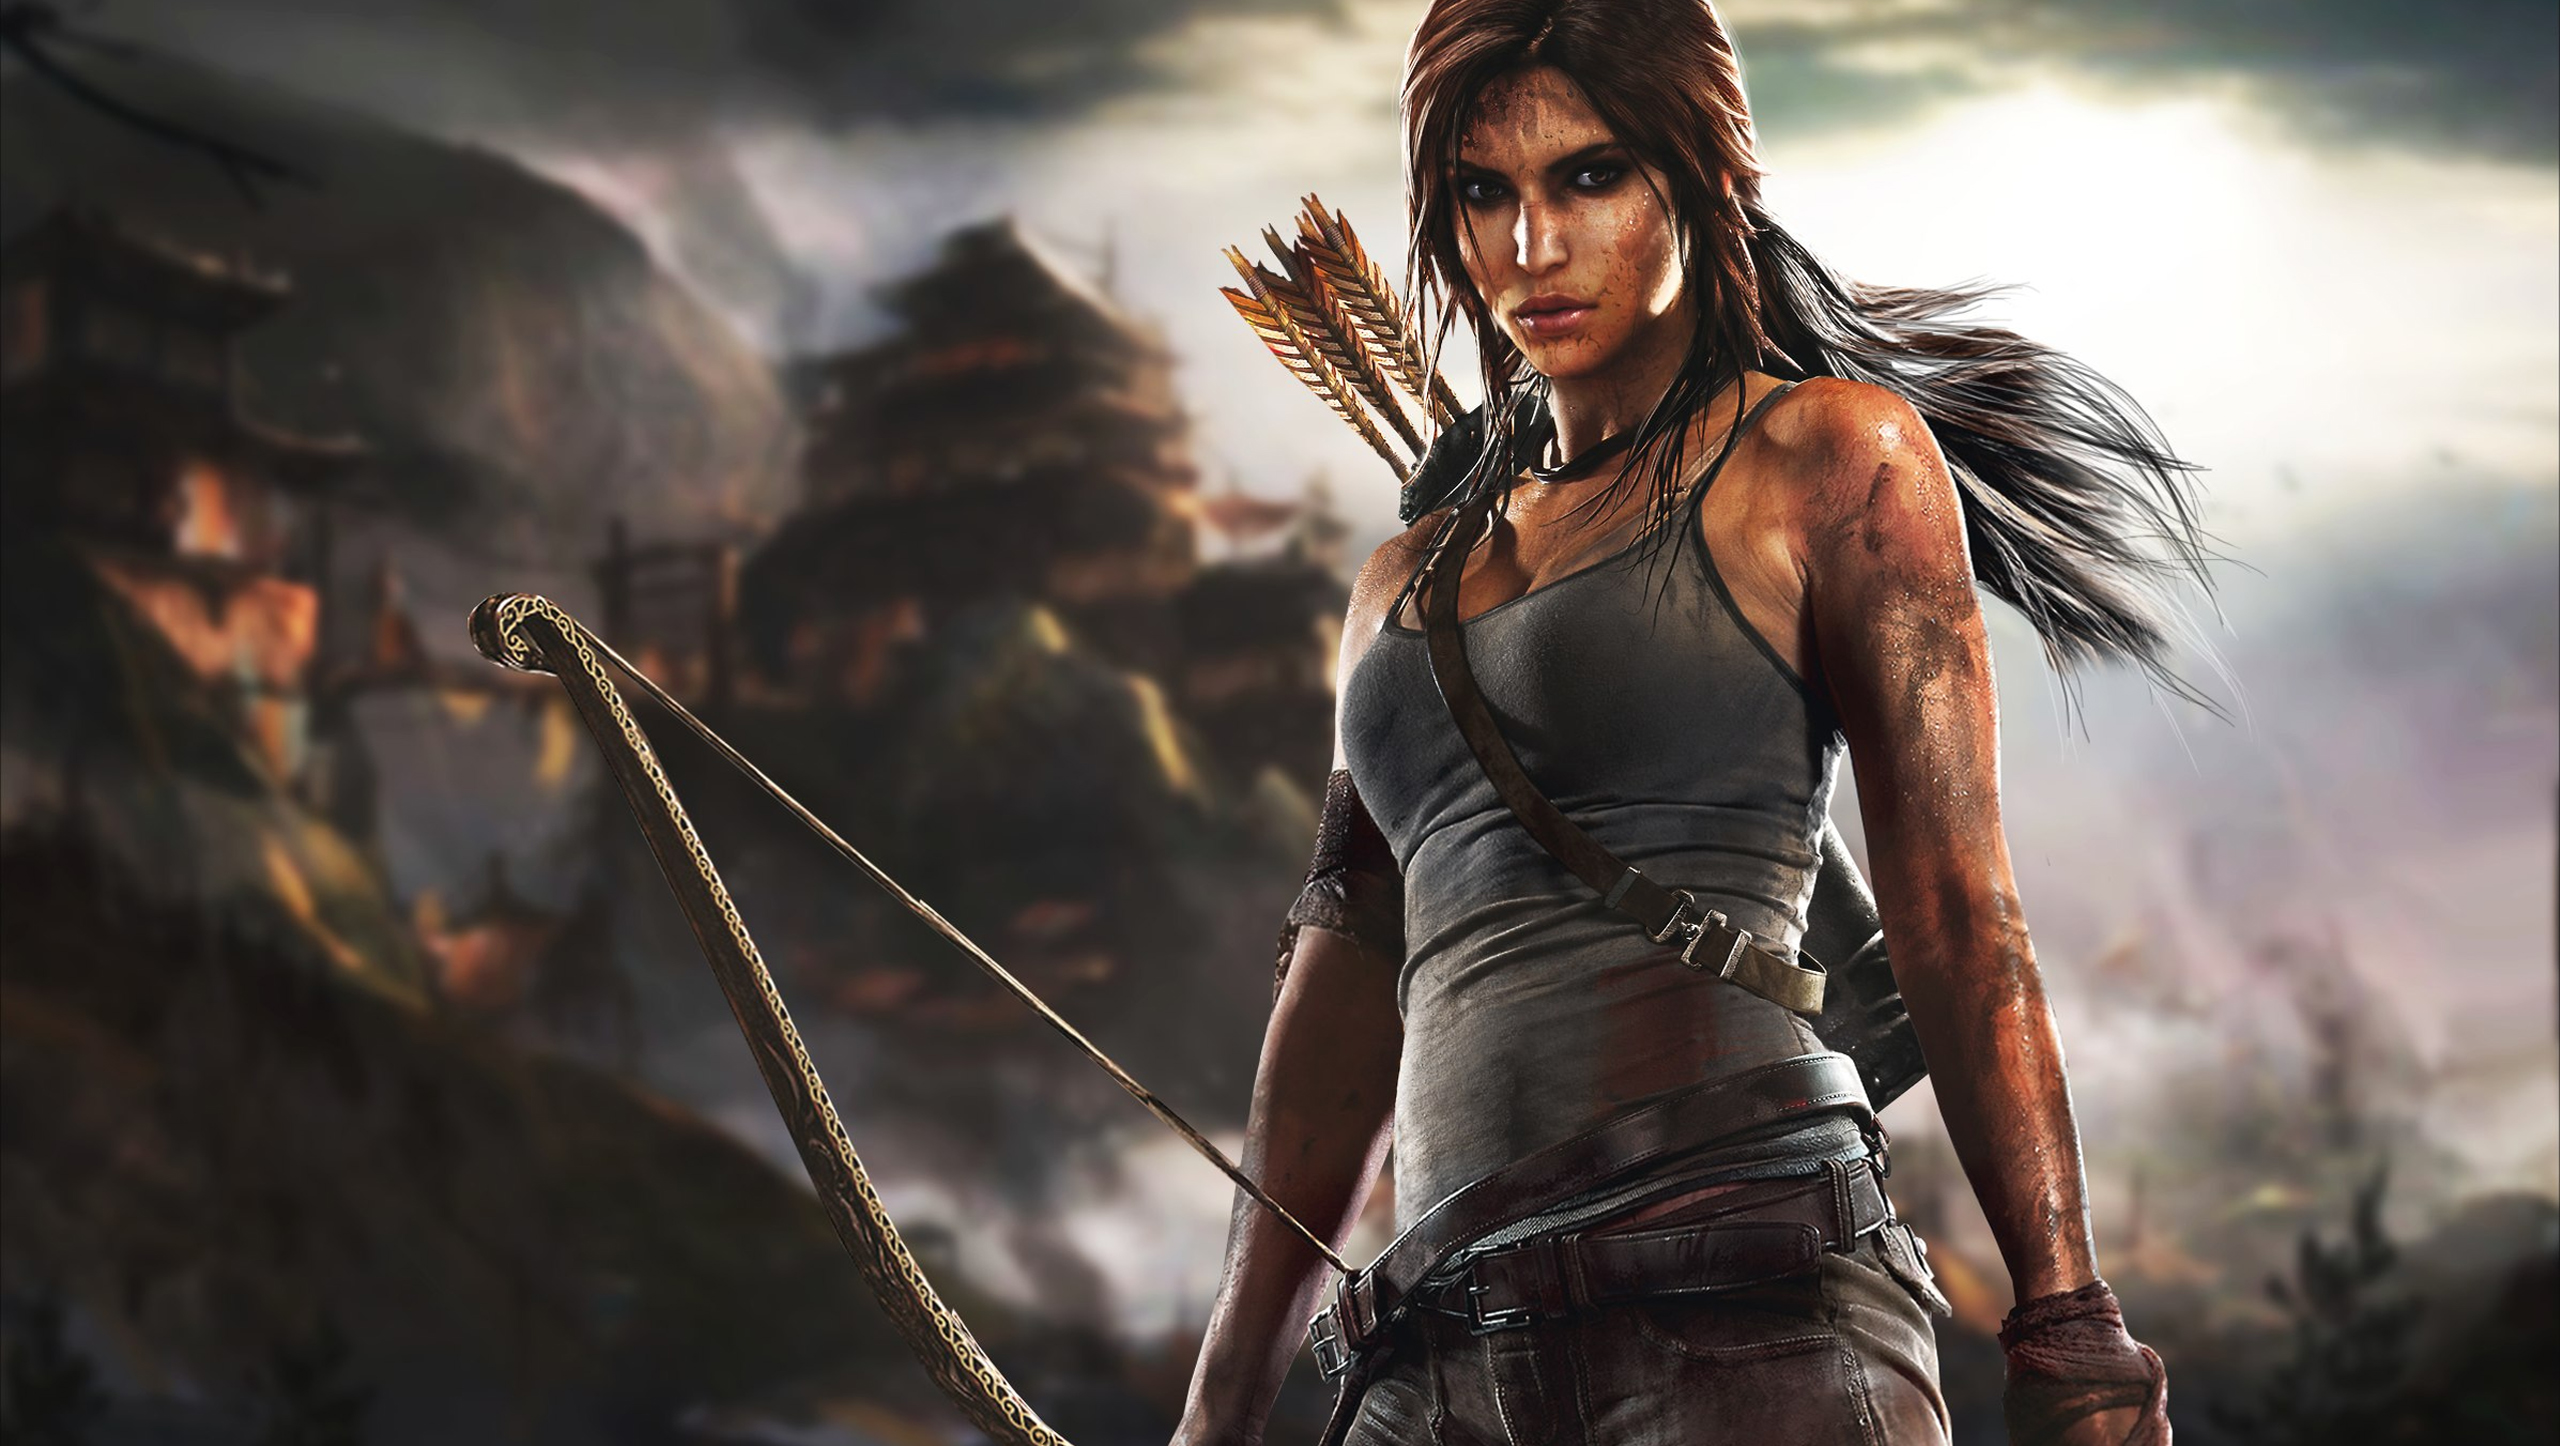 Tomb Raider - Rise of the Tomb Raider Арт